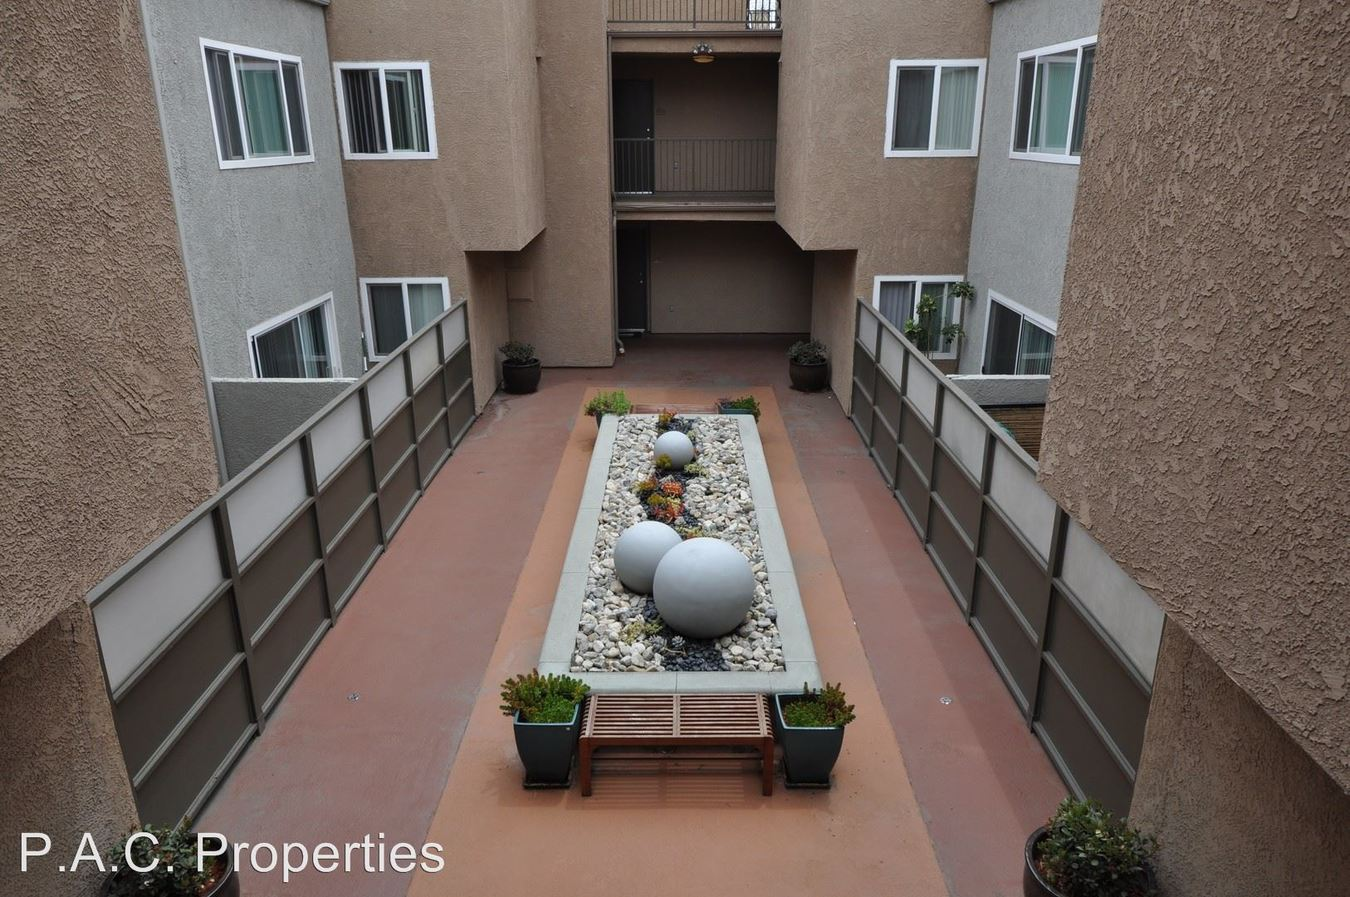 2 Bedrooms 2 Bathrooms Apartment for rent at 11035 Otsego Street in North Hollywood, CA